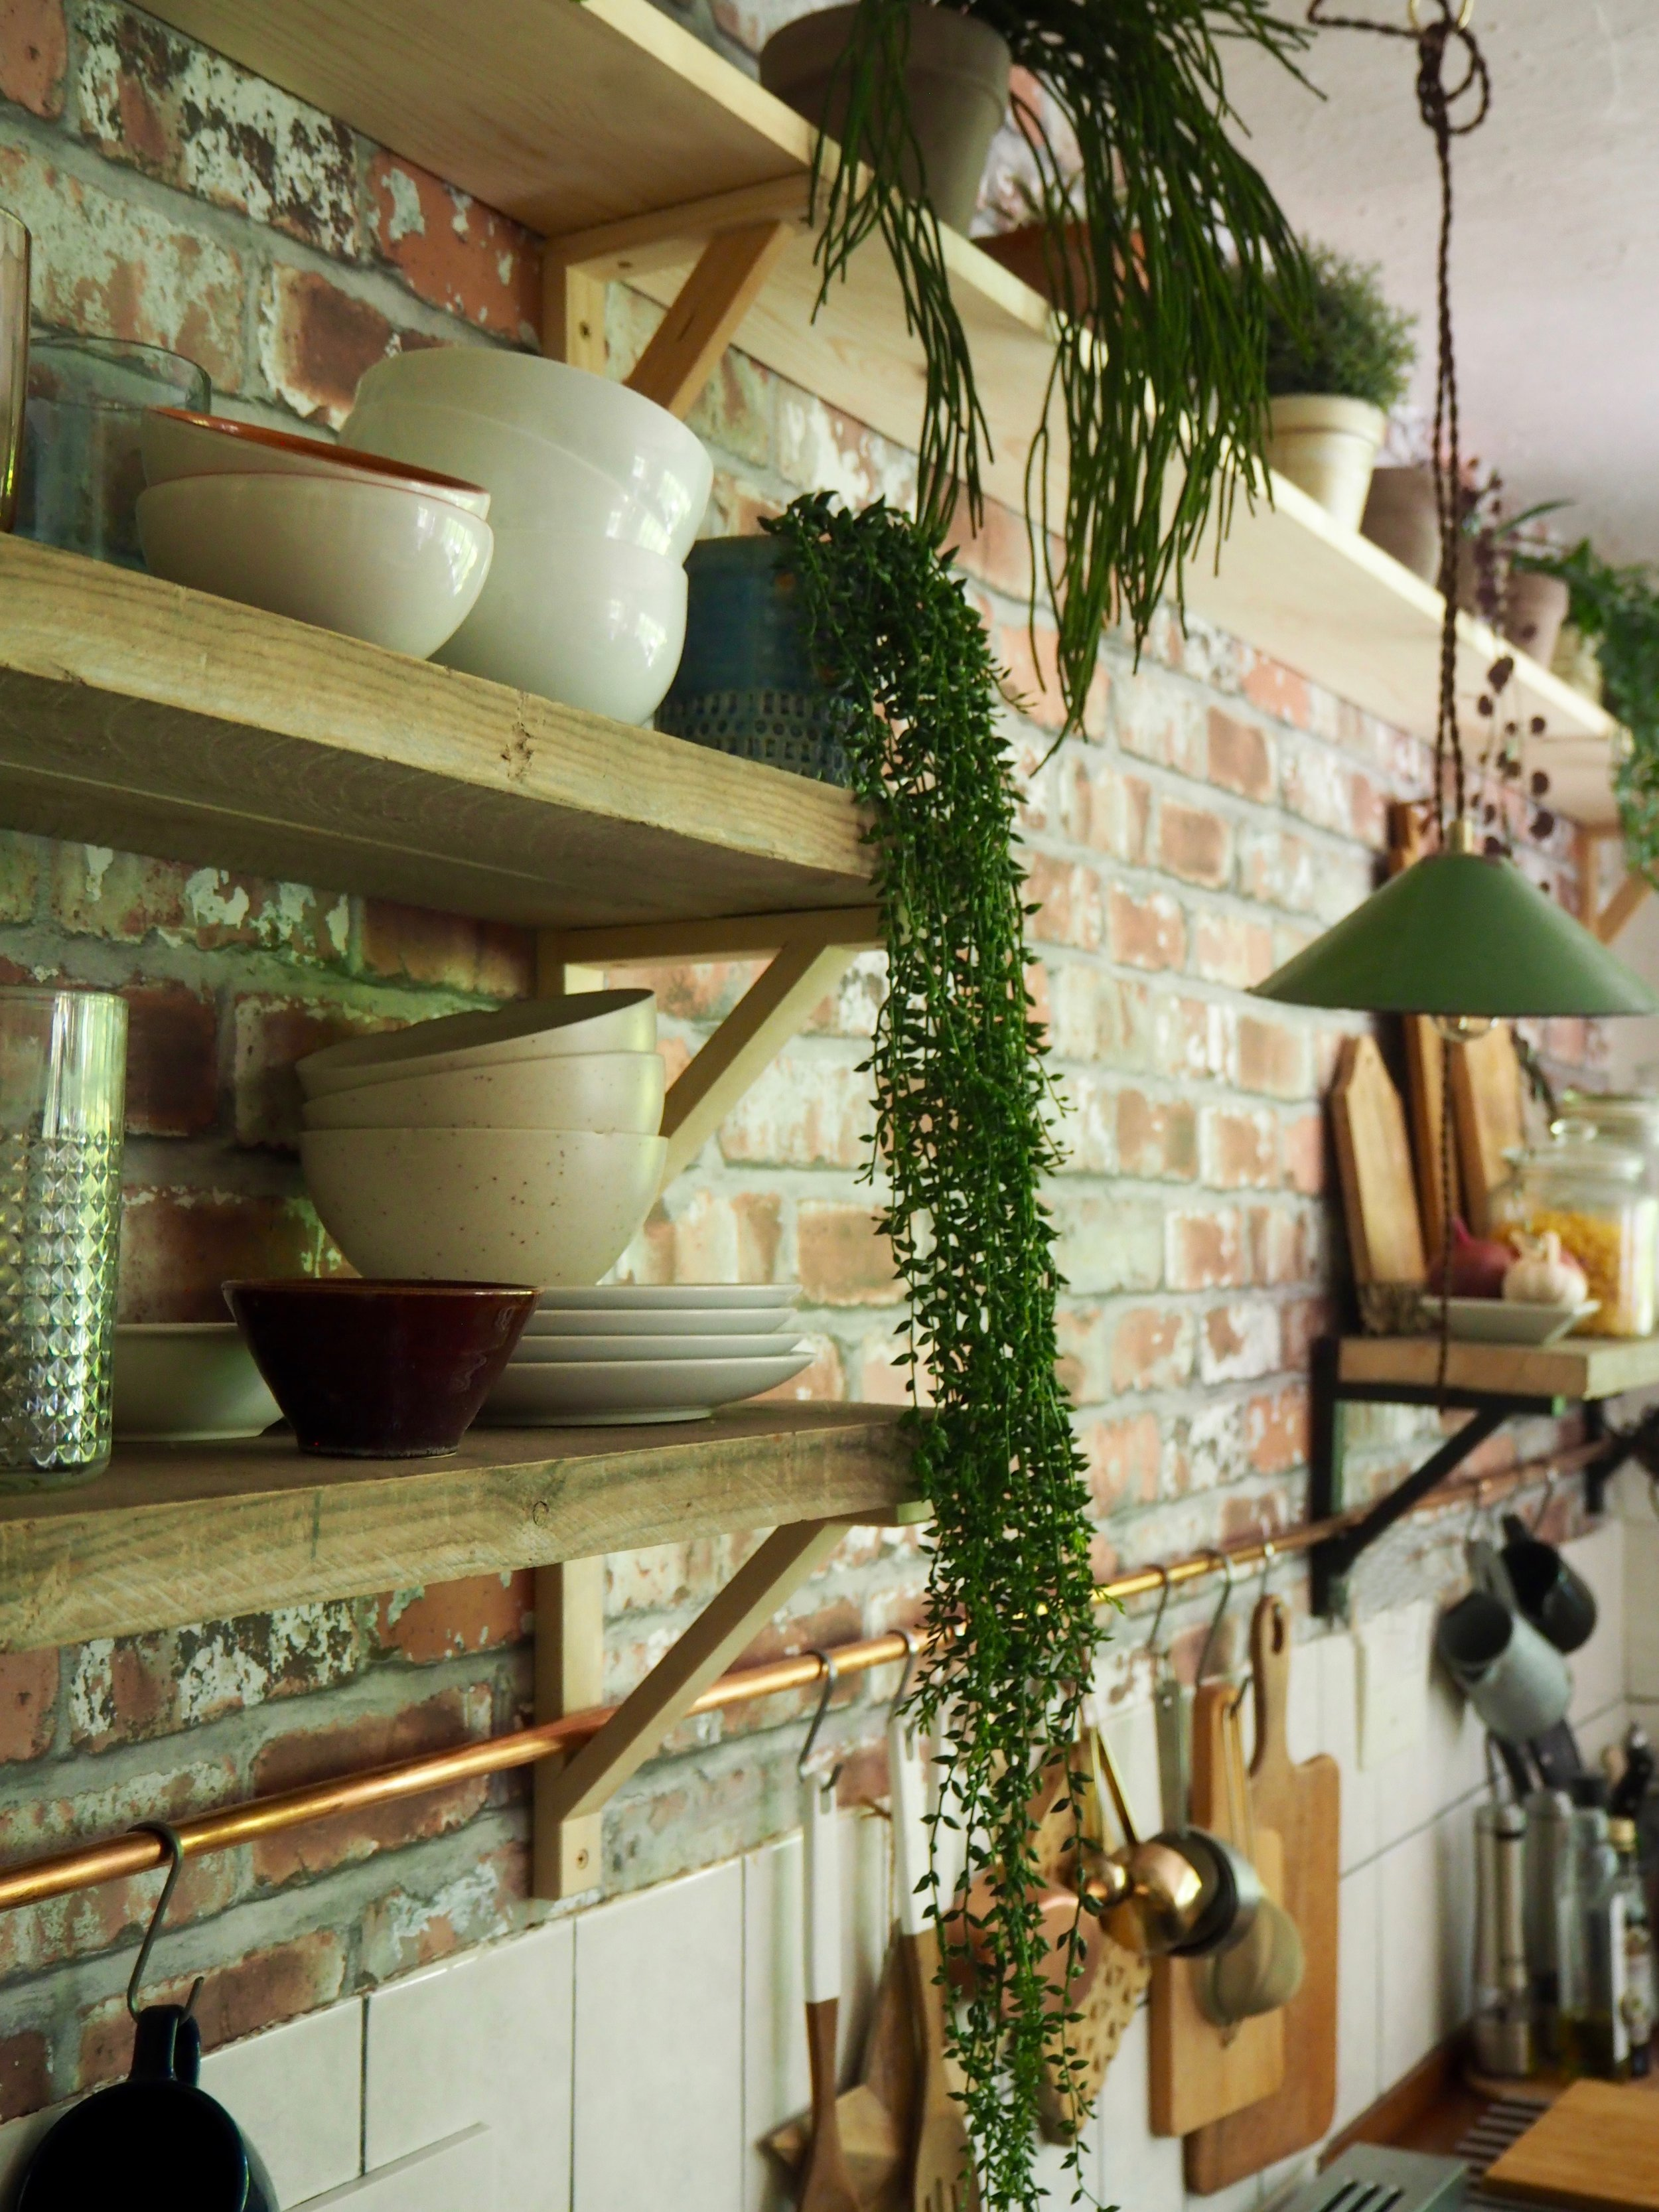 The copper pipe running through the shelf brackets forming a rail…..